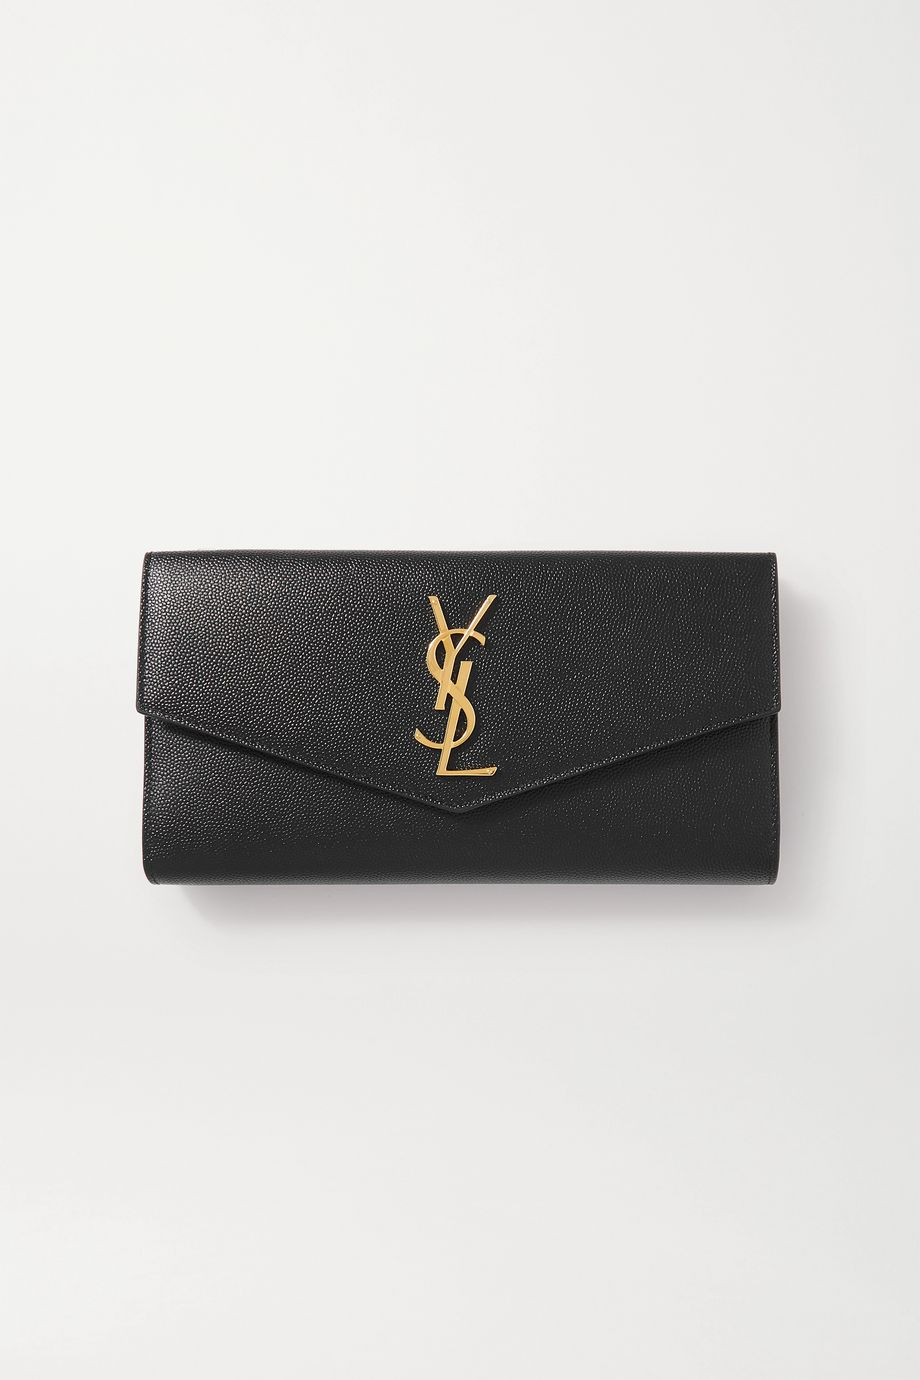 SAINT LAURENT Uptown textured-leather wallet